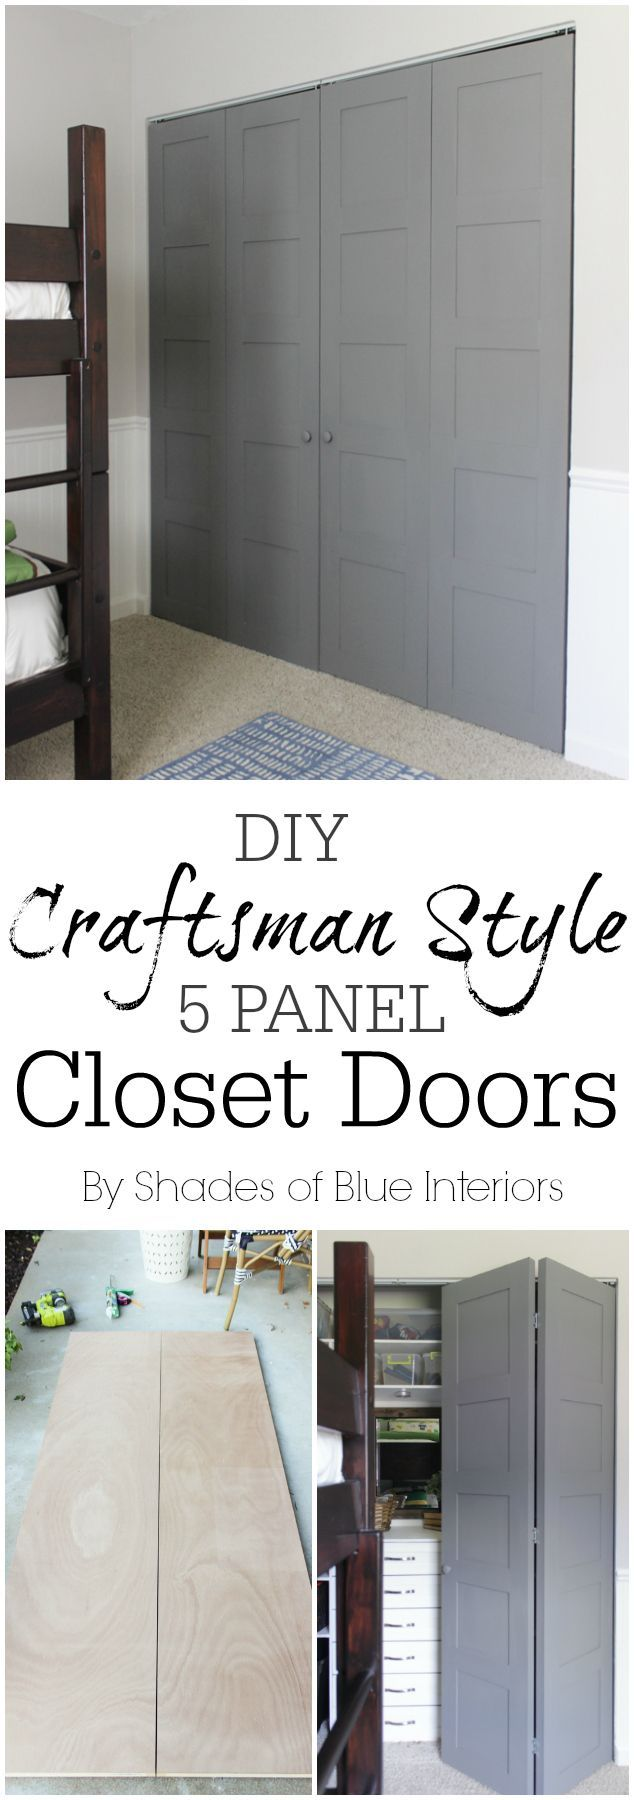 Best 25+ Closet doors ideas on Pinterest | Closet ideas, Sliding ...